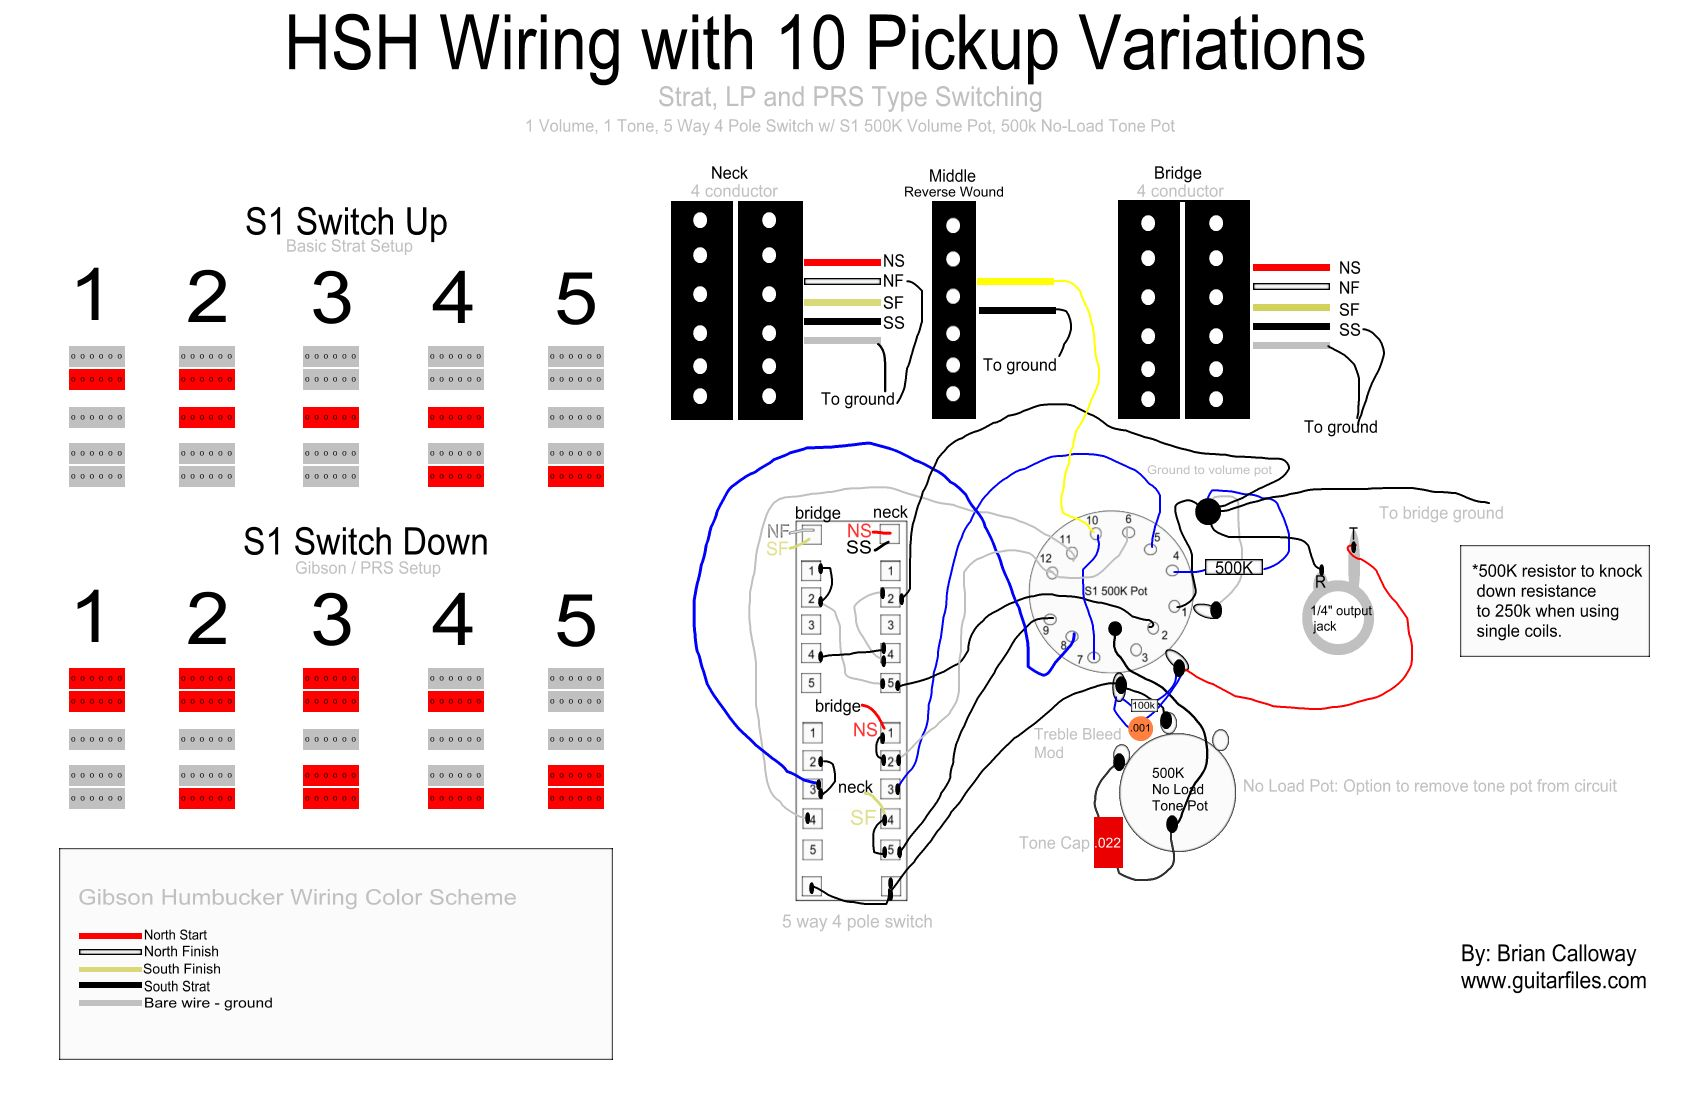 Hsh Pickup Wiring 3 Diagram Schematics Suhr Diagrams Humbucker Guitar 10 Combinations 4 Pole Switch And S1 Emg